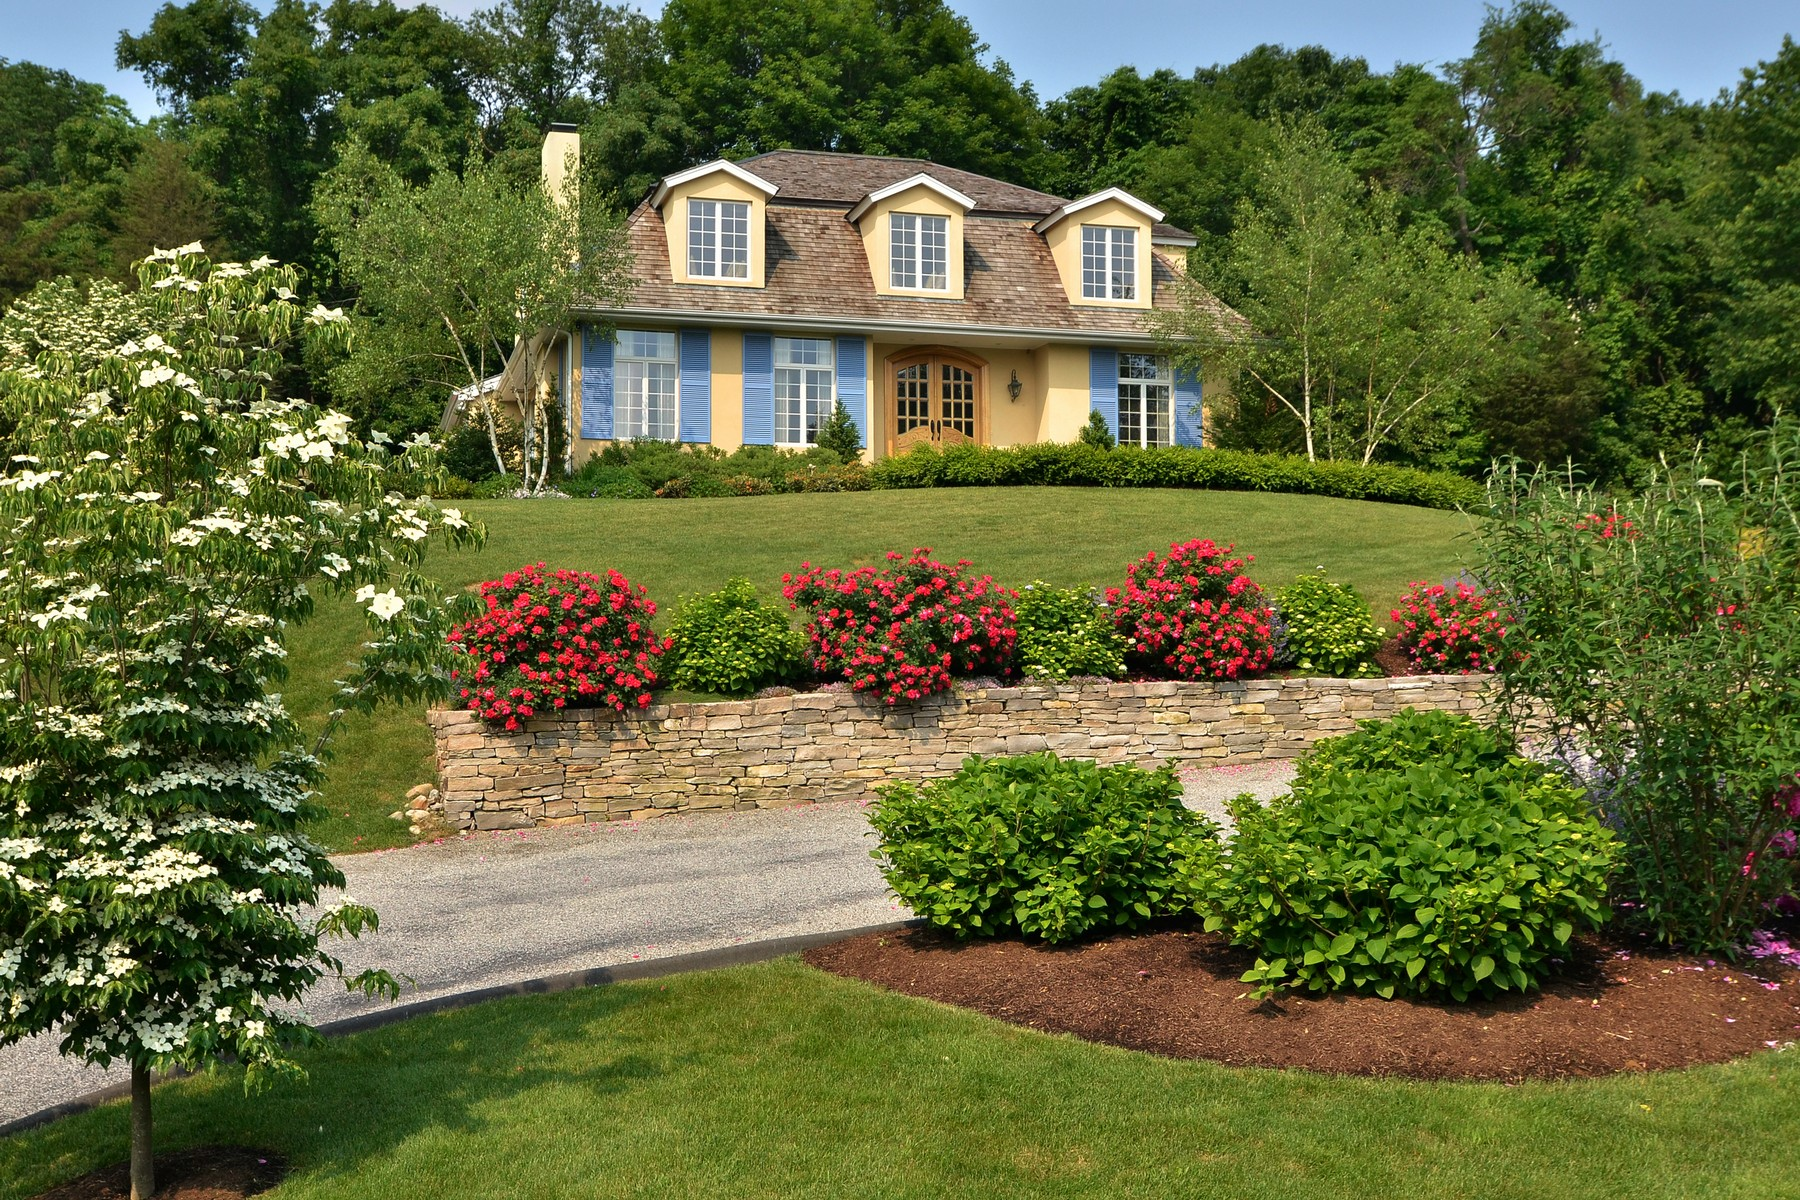 Single Family Home for Sale at A Perfect, Private Retreat Awaits You 67-2 Wig Hill Road, Chester, Connecticut, 06412 United States